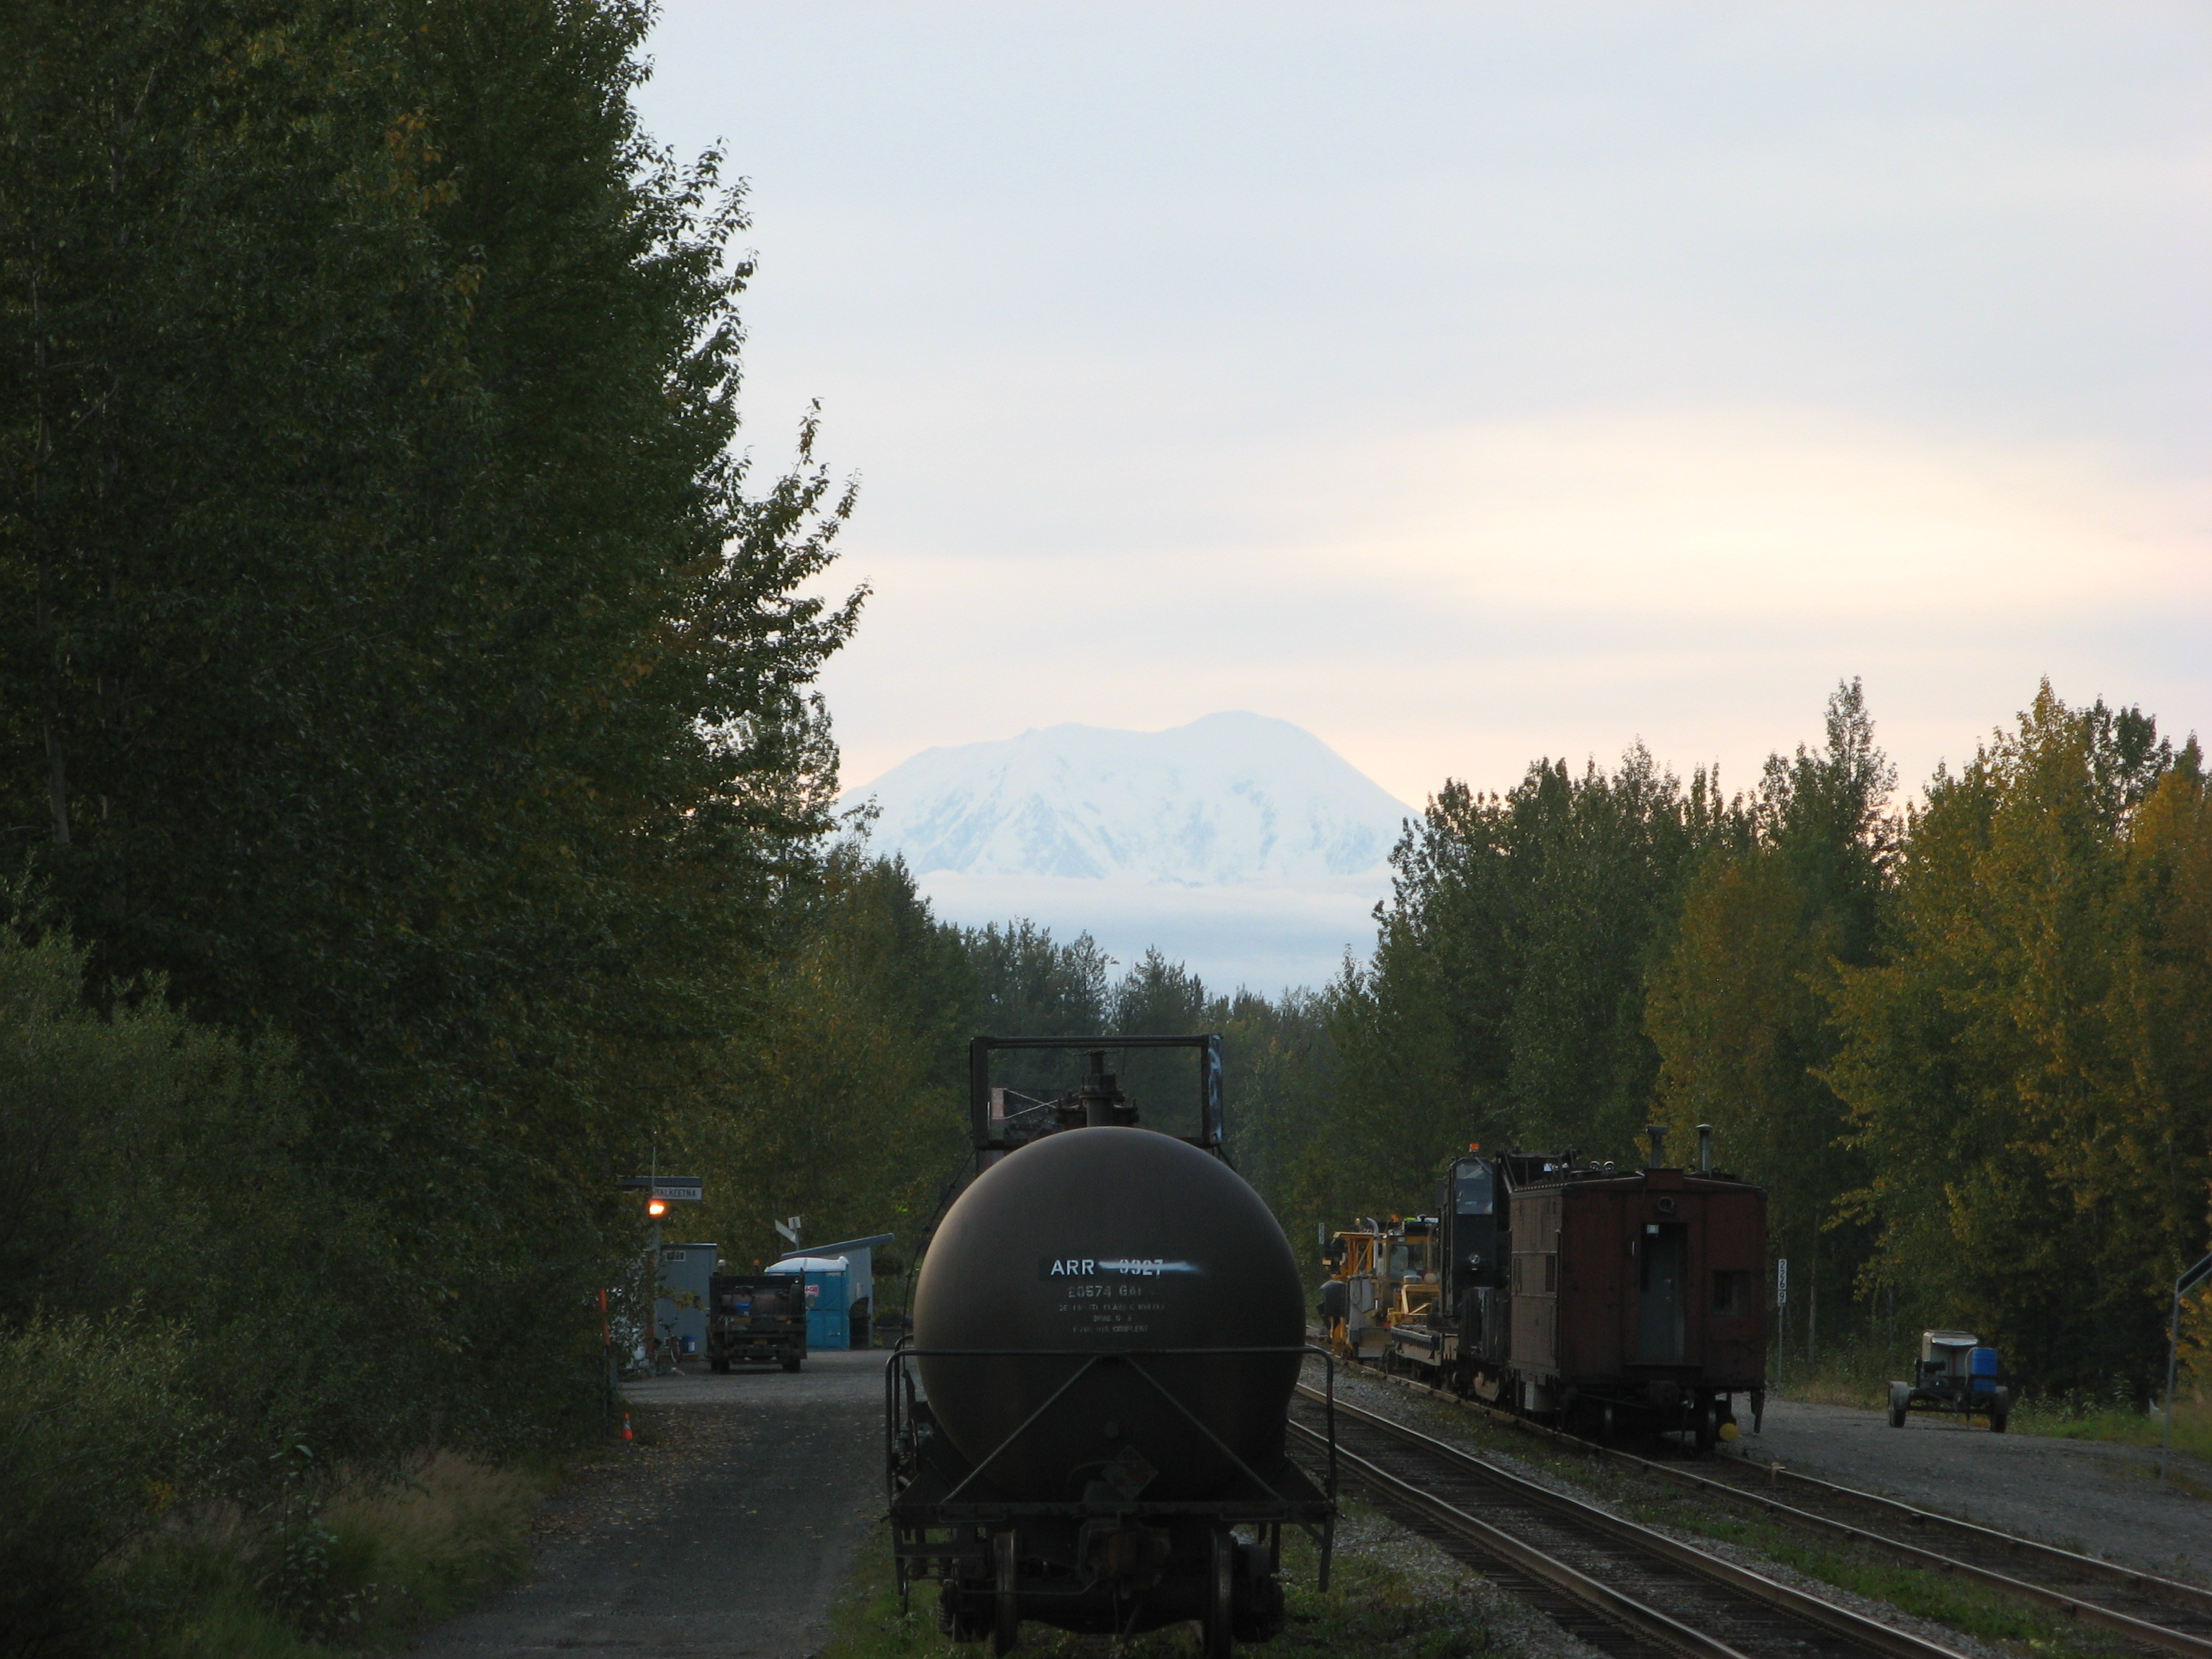 Denali mountain peak from Talkeetna railroad tracks.